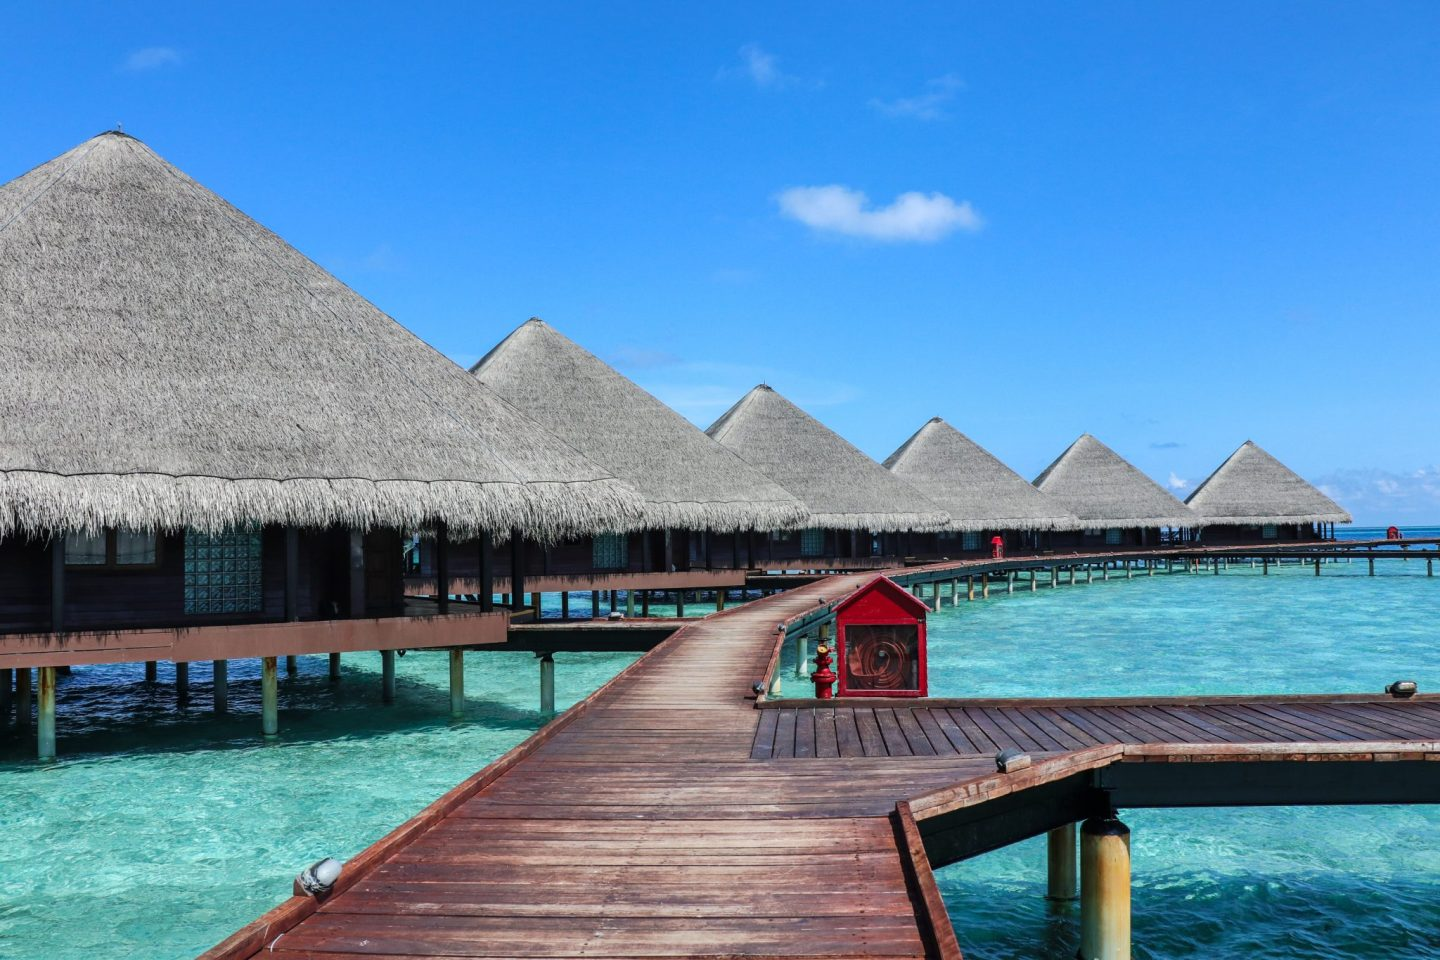 32 Photos That Will Make You Want to Visit the Maldives